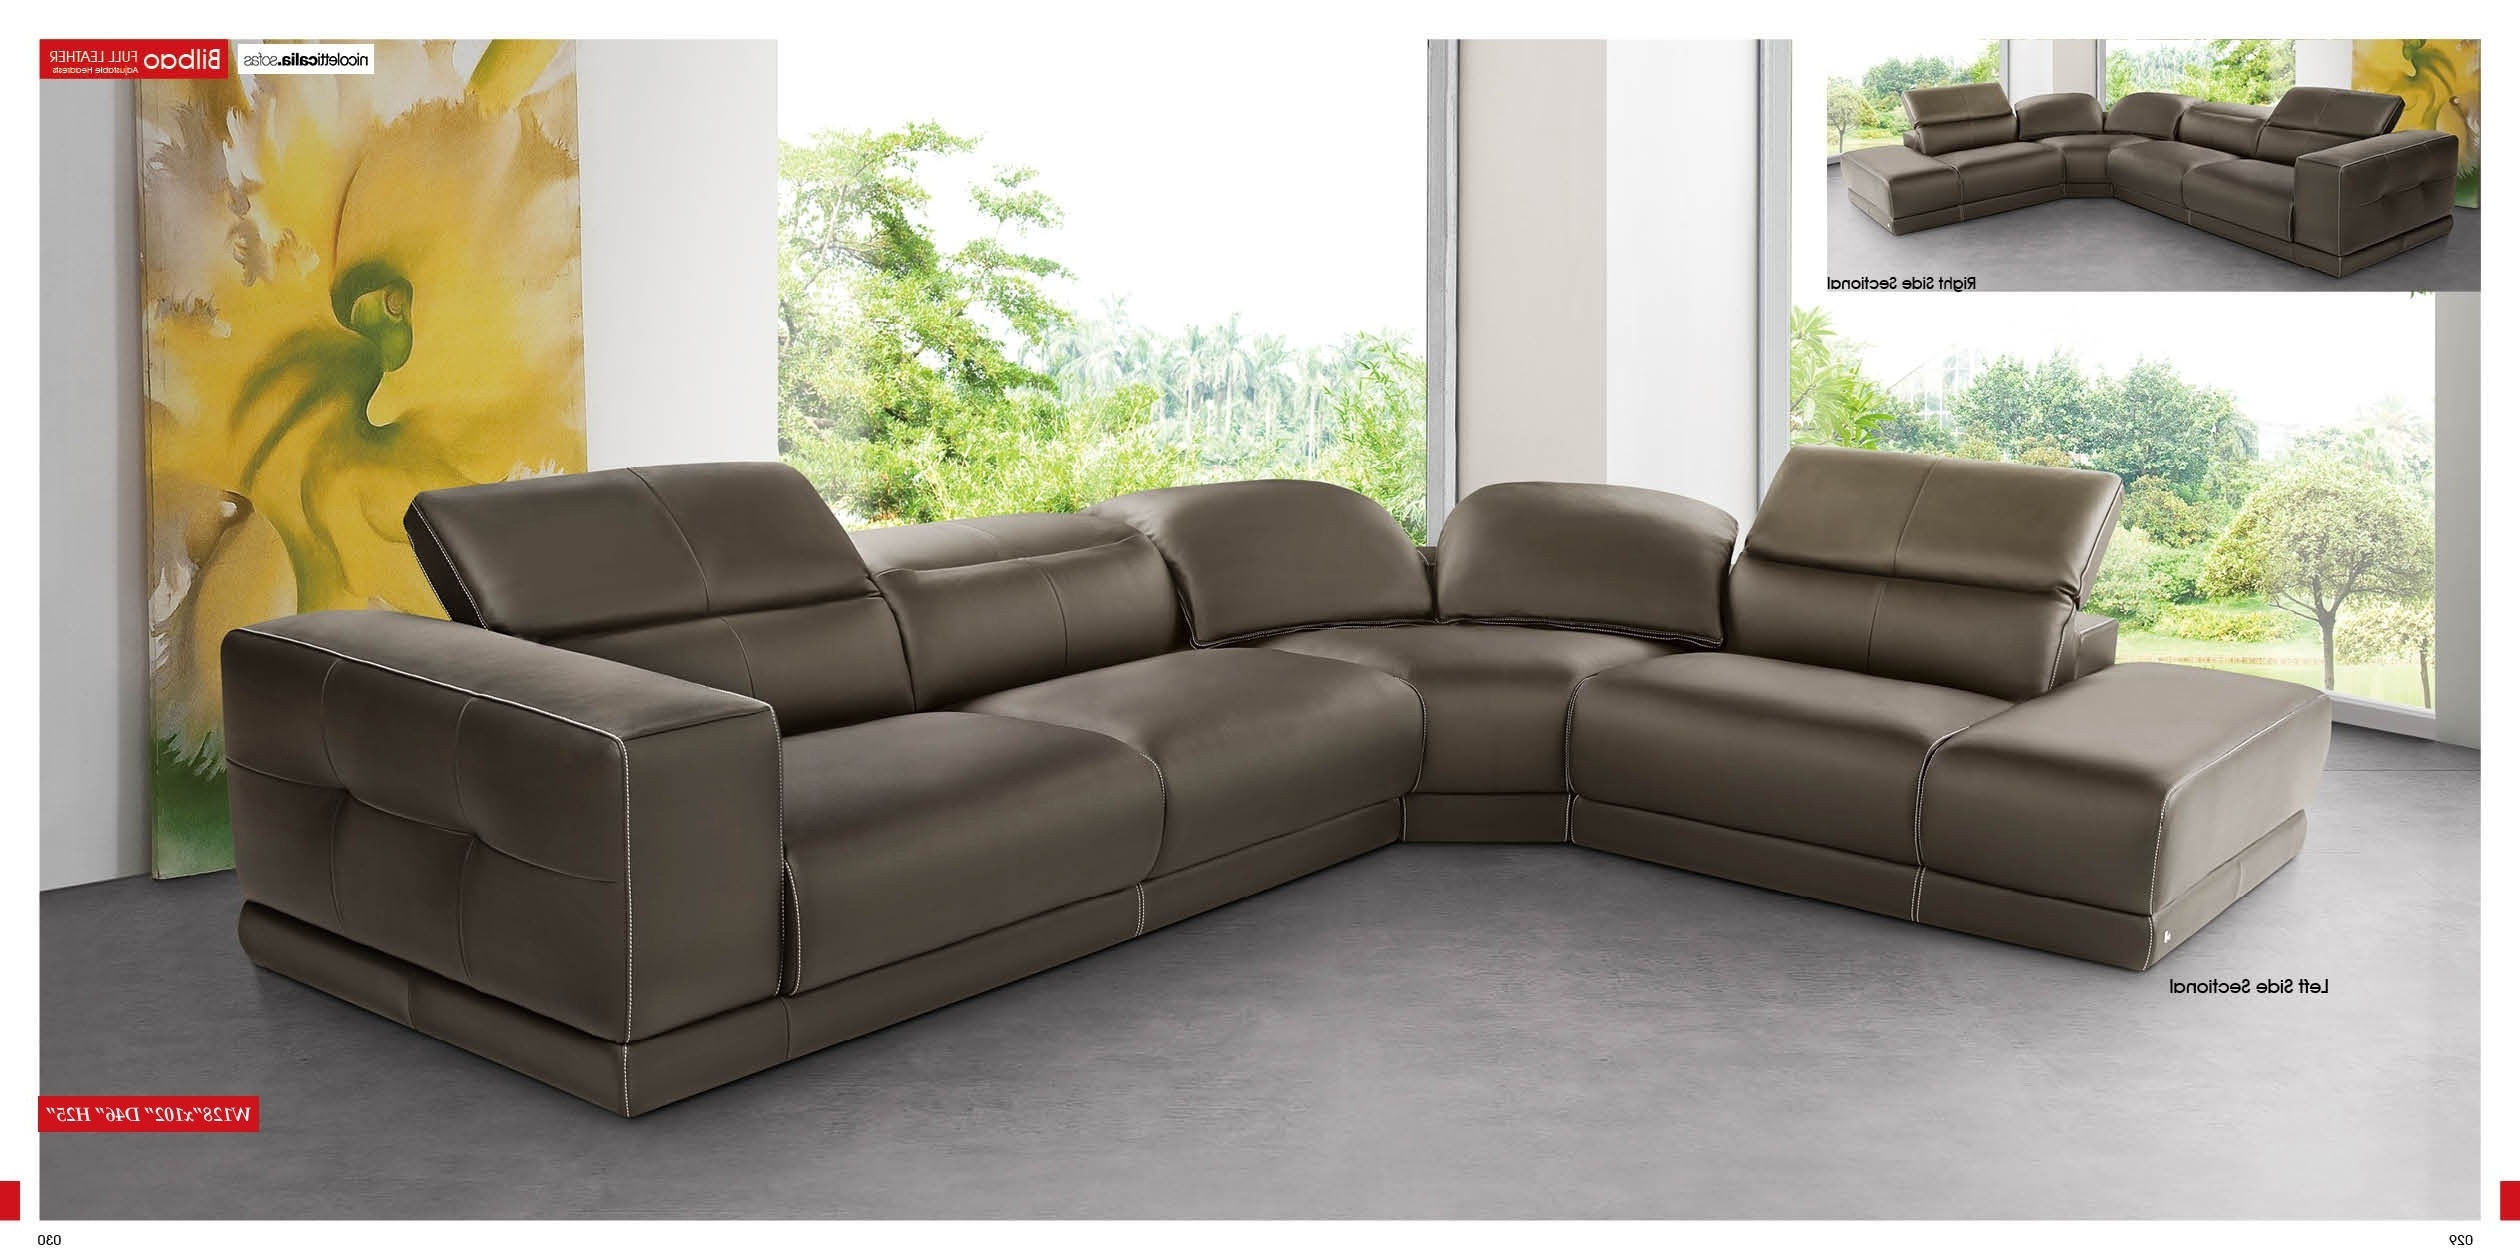 Furniture : Sectional Sofa 120 Sectional Couch Guelph Recliner 3 Regarding Well Known Guelph Sectional Sofas (View 13 of 20)